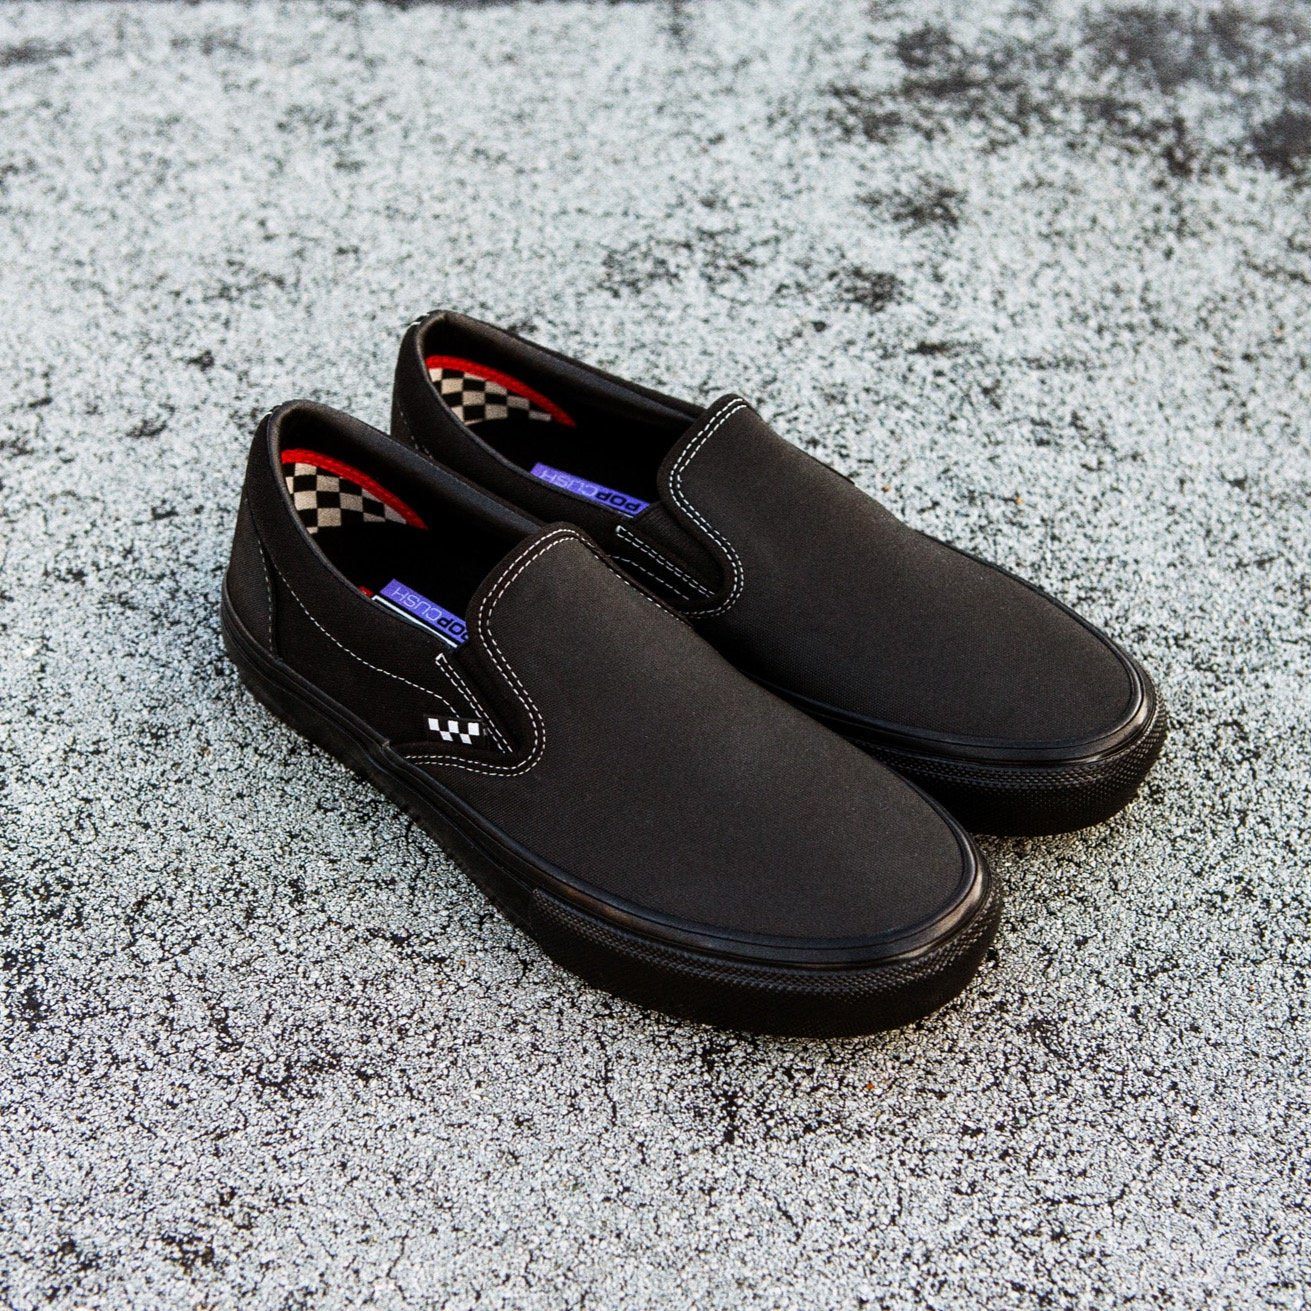 Vans Skate Slip On Black